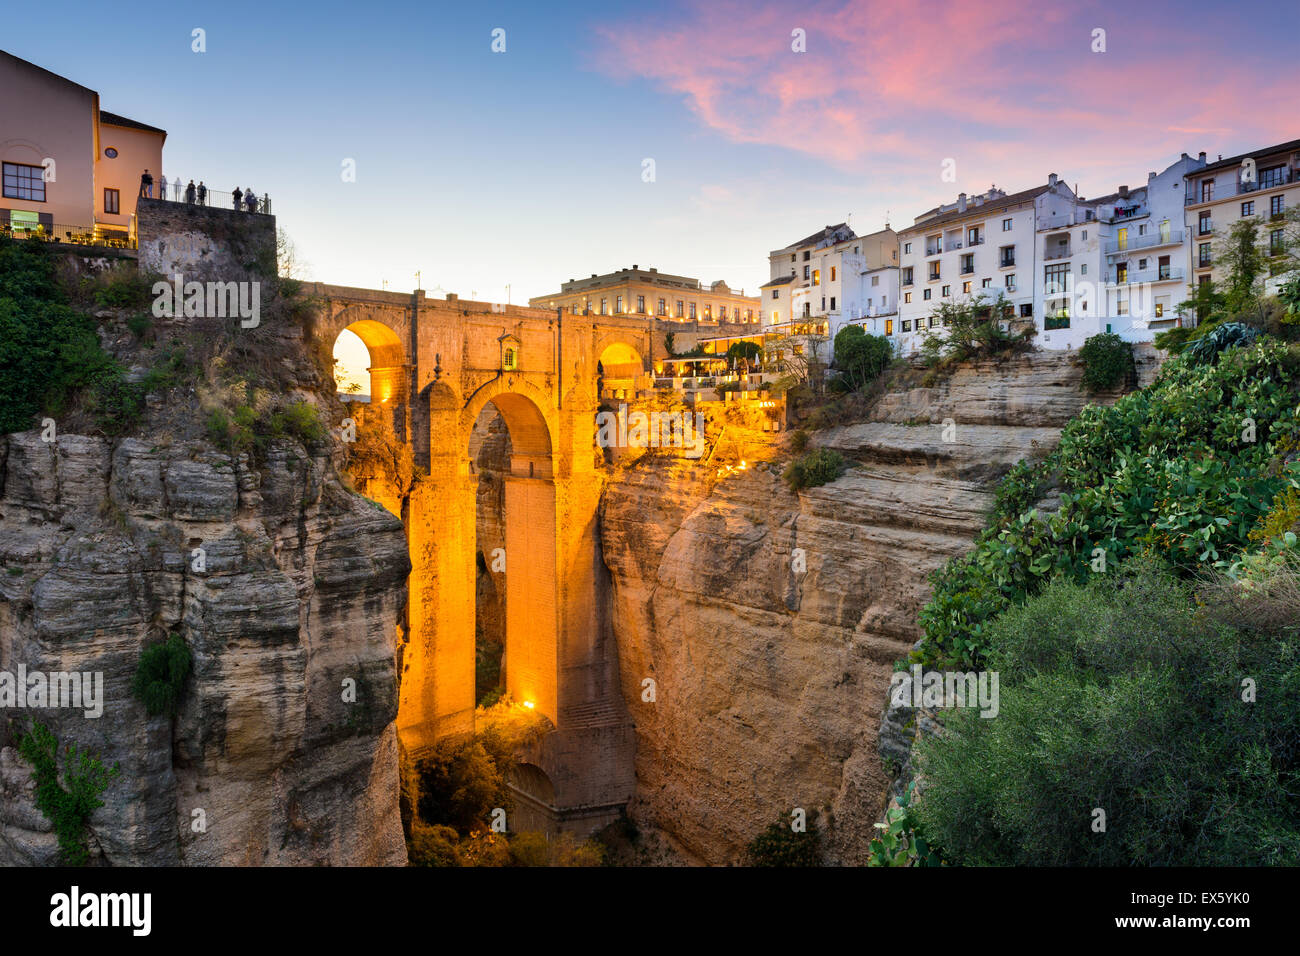 Ronda, Spain at the Puente Nuevo Bridge over the Tajo Gorge. - Stock Image